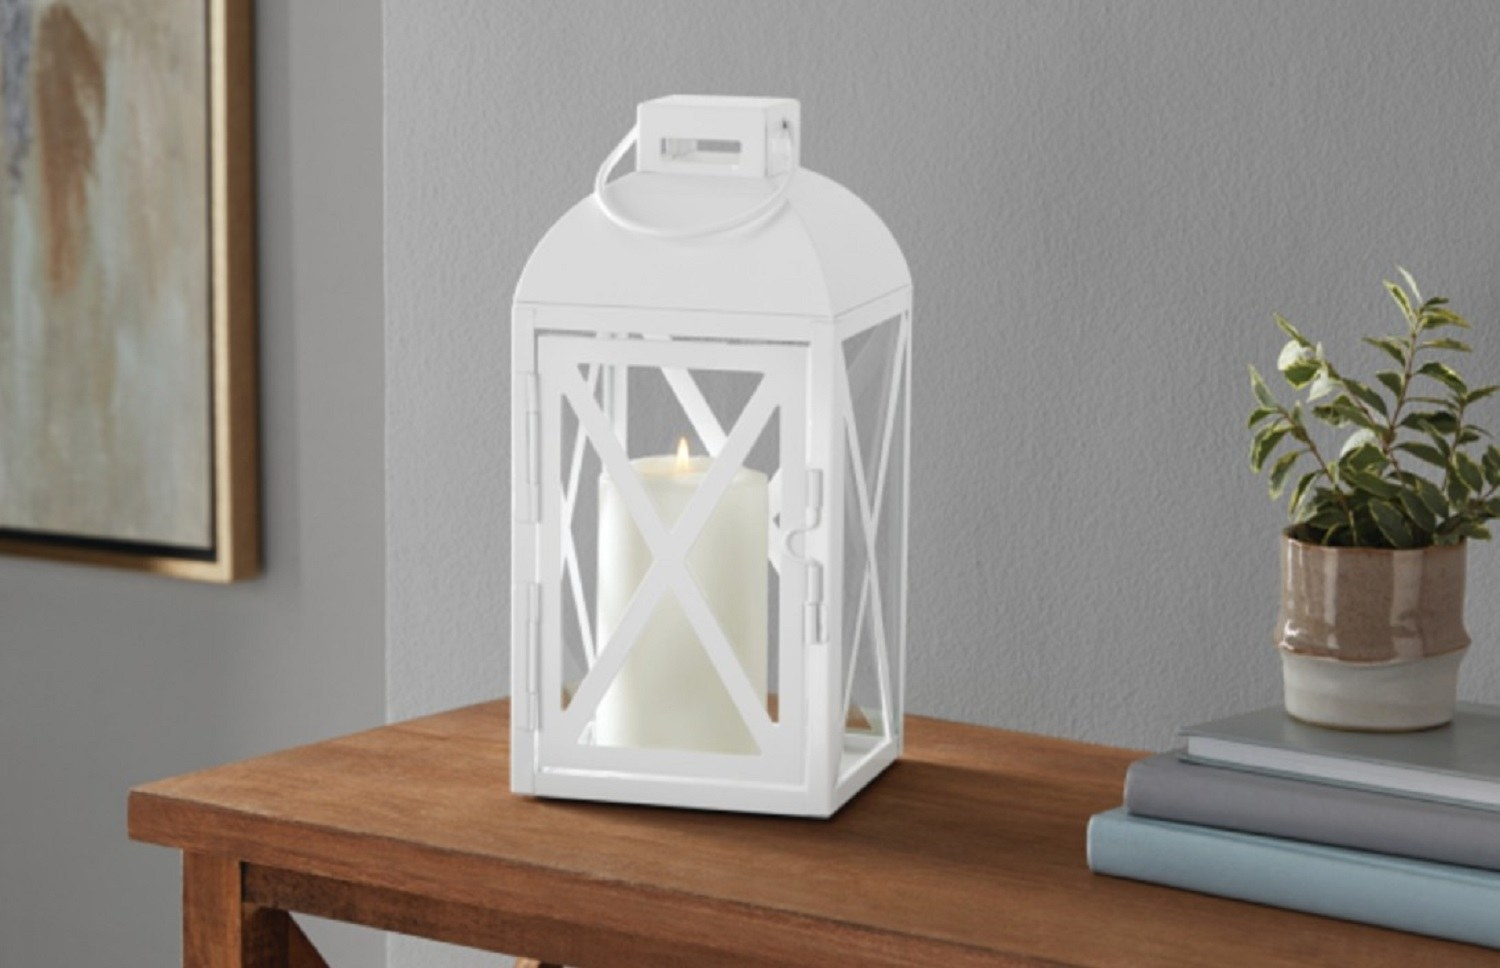 The lantern in white holding a candle